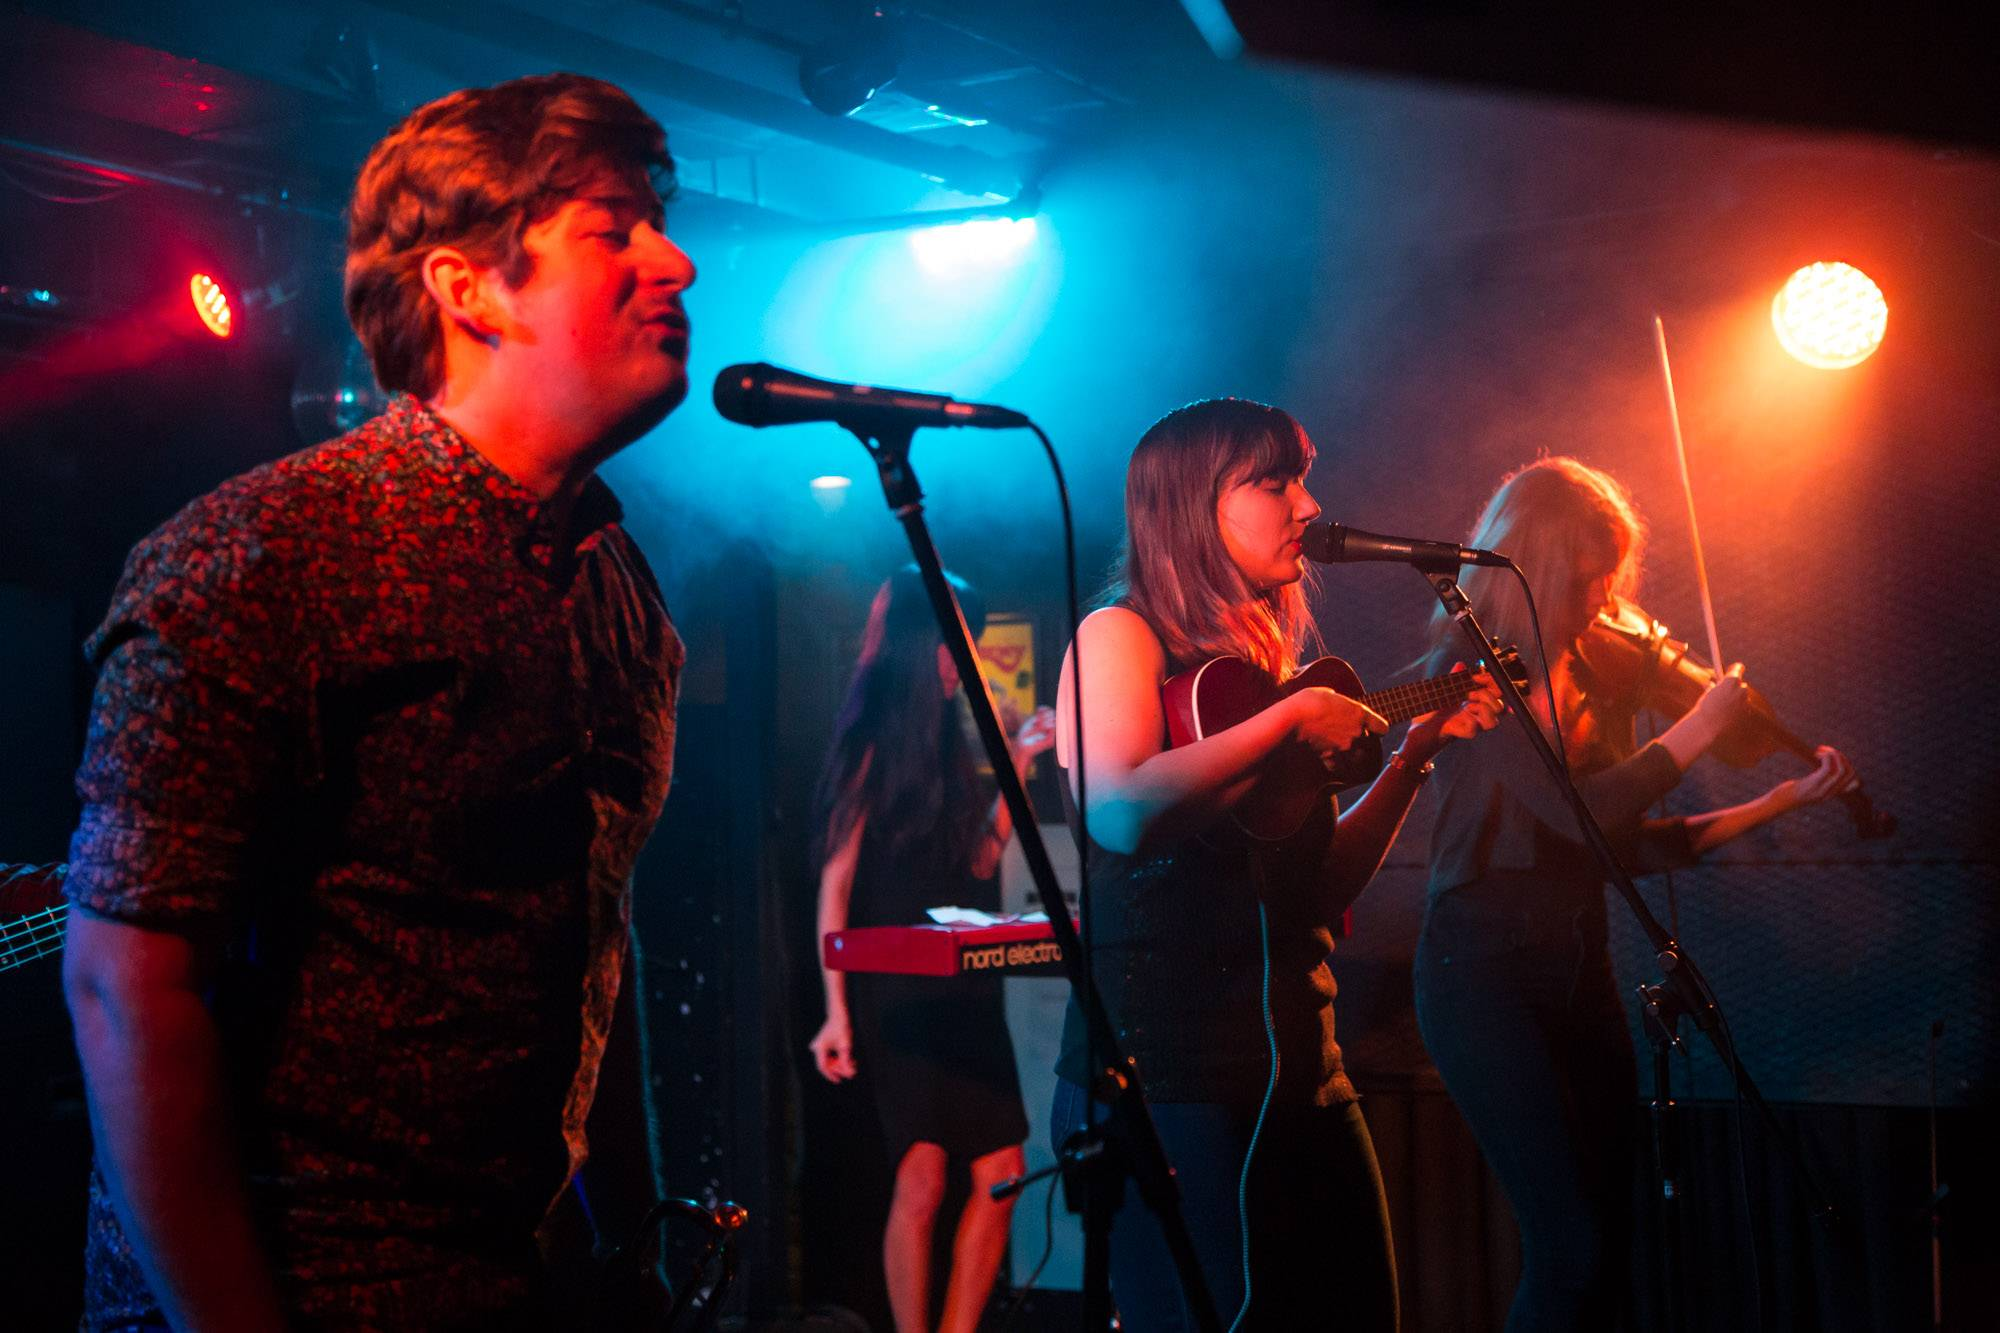 The Ruffled Feathers at the Biltmore Cabaret, Vancouver, Dec. 1 2016. Kirk Chantraine photo.